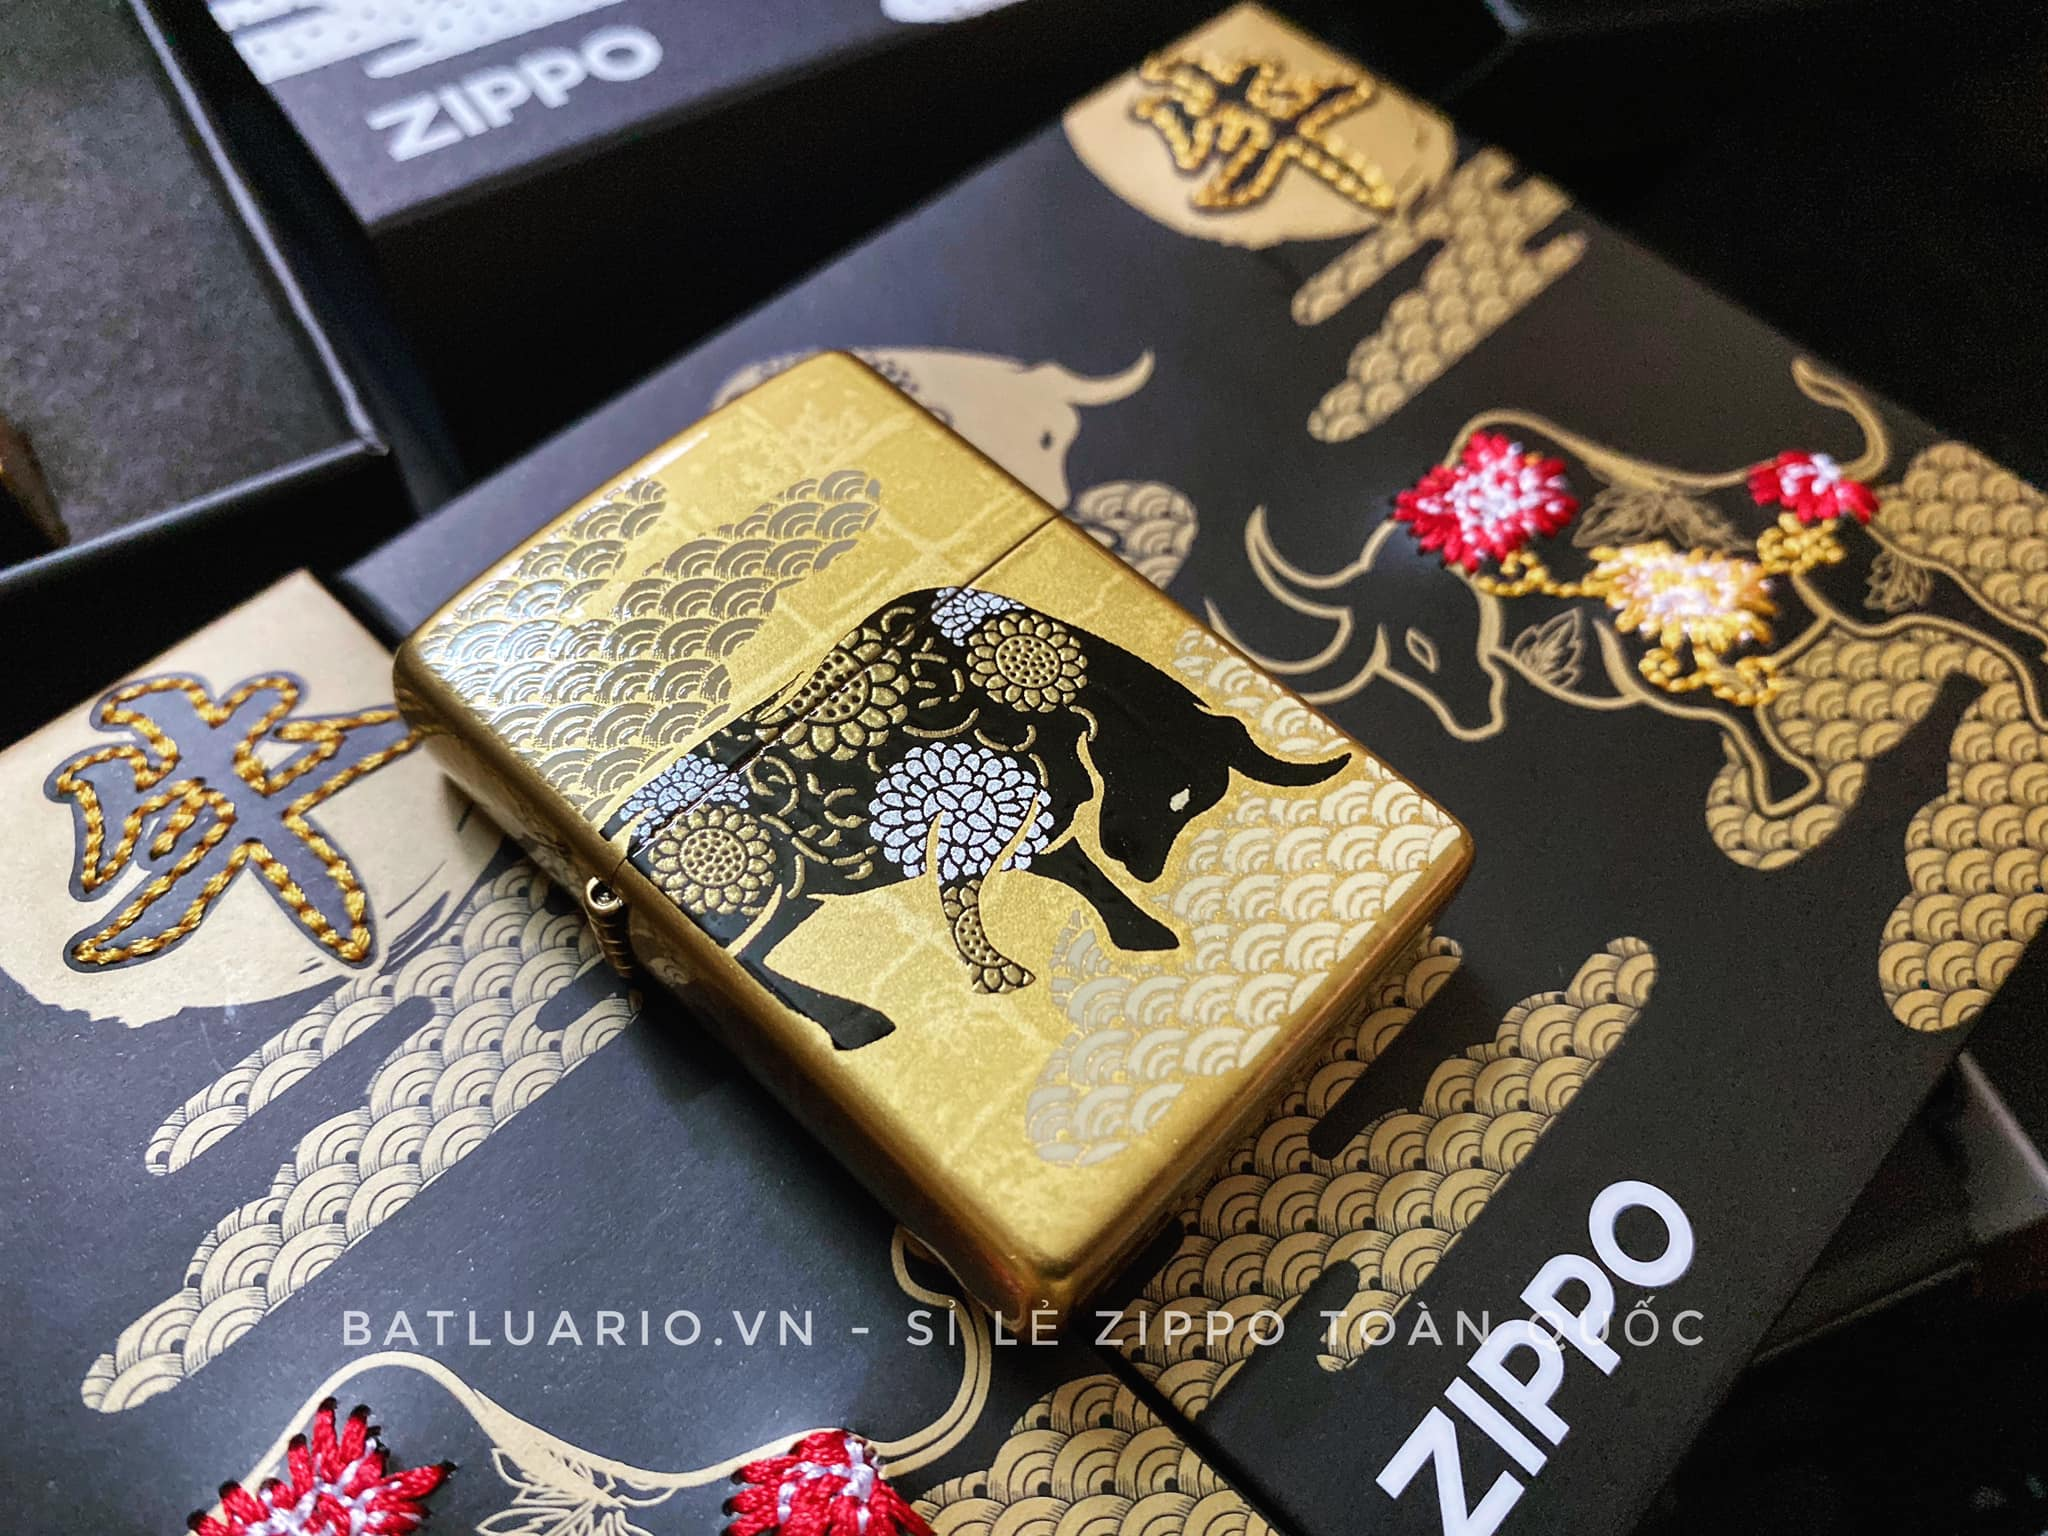 Zippo Year Of The Ox Gold Asia Limited Edition - Zippo CZA-2-18A 13